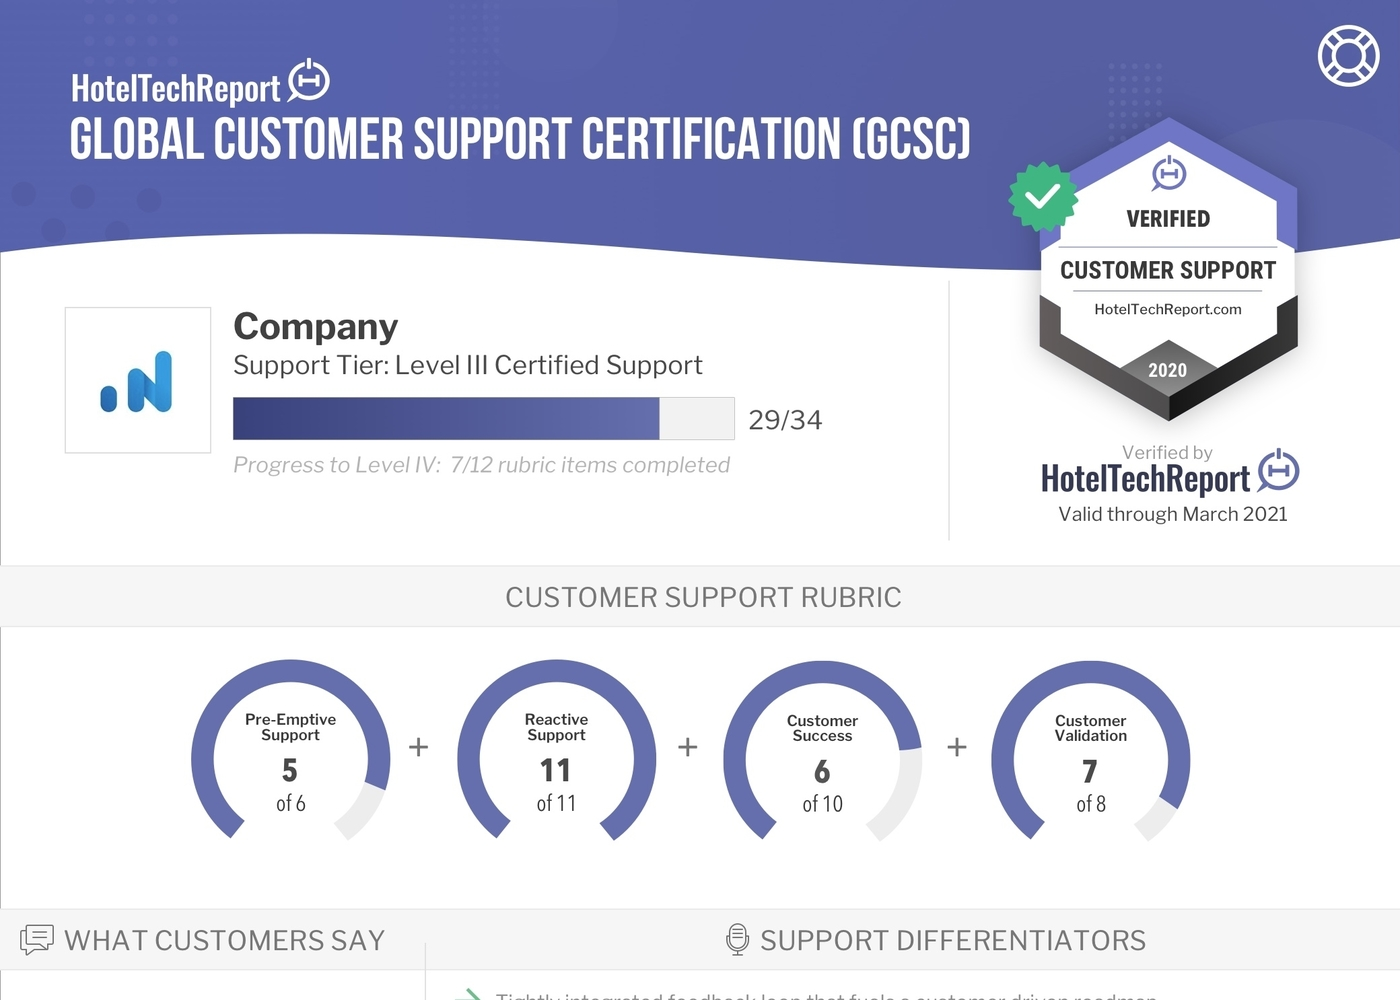 OTA Insight achieves Level III Global Support Certification